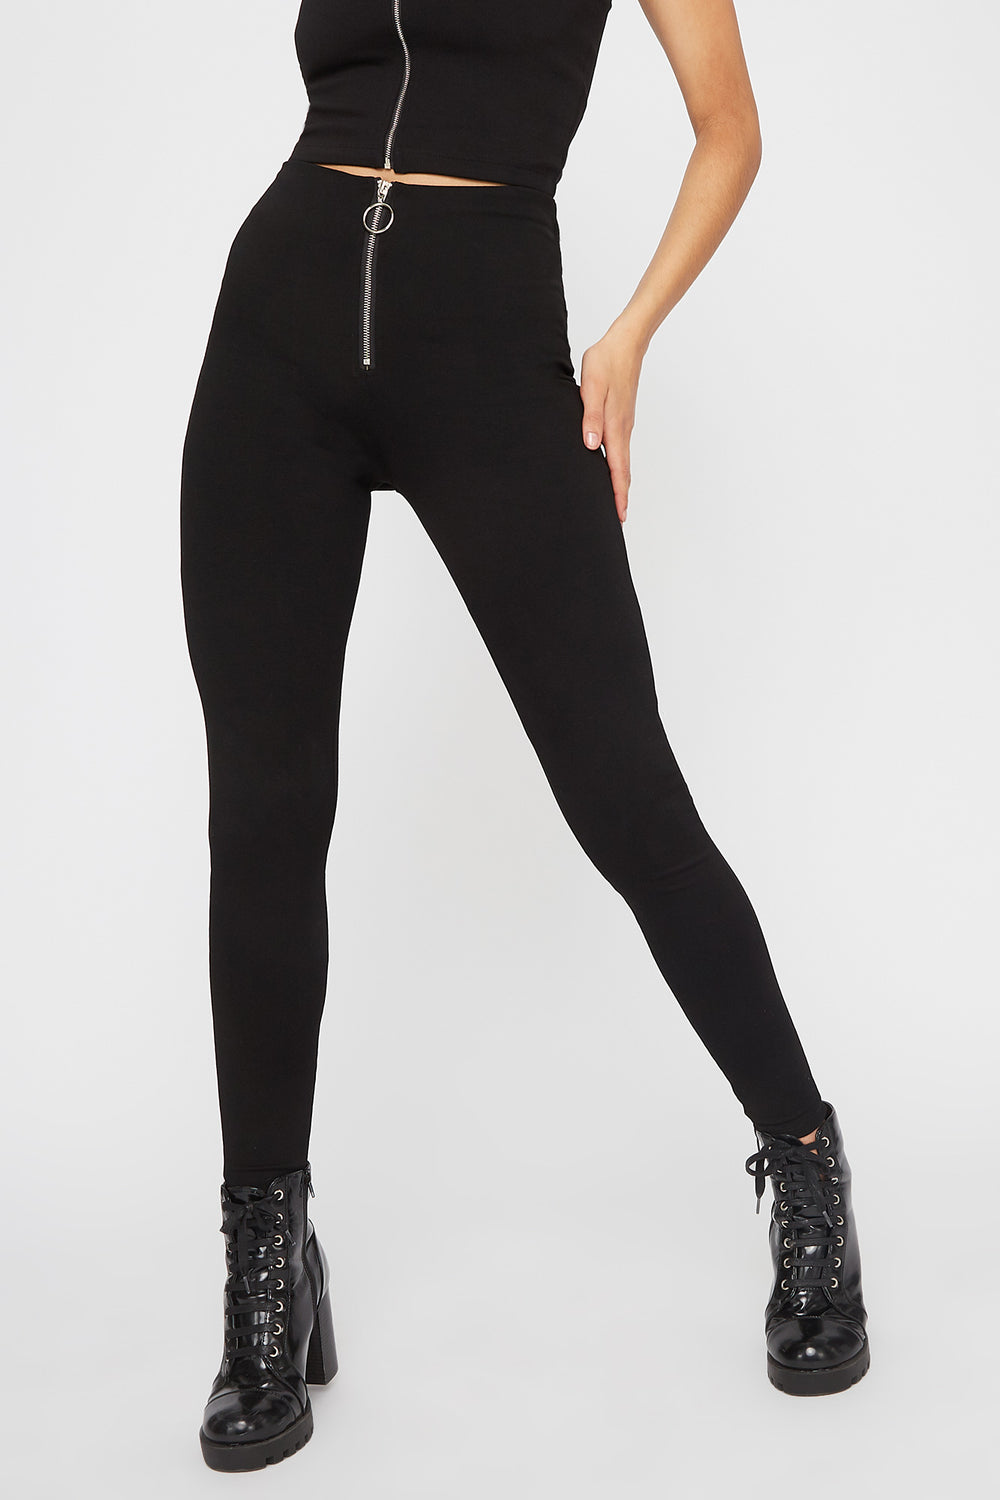 Zip-Up Pull-On Pant Black